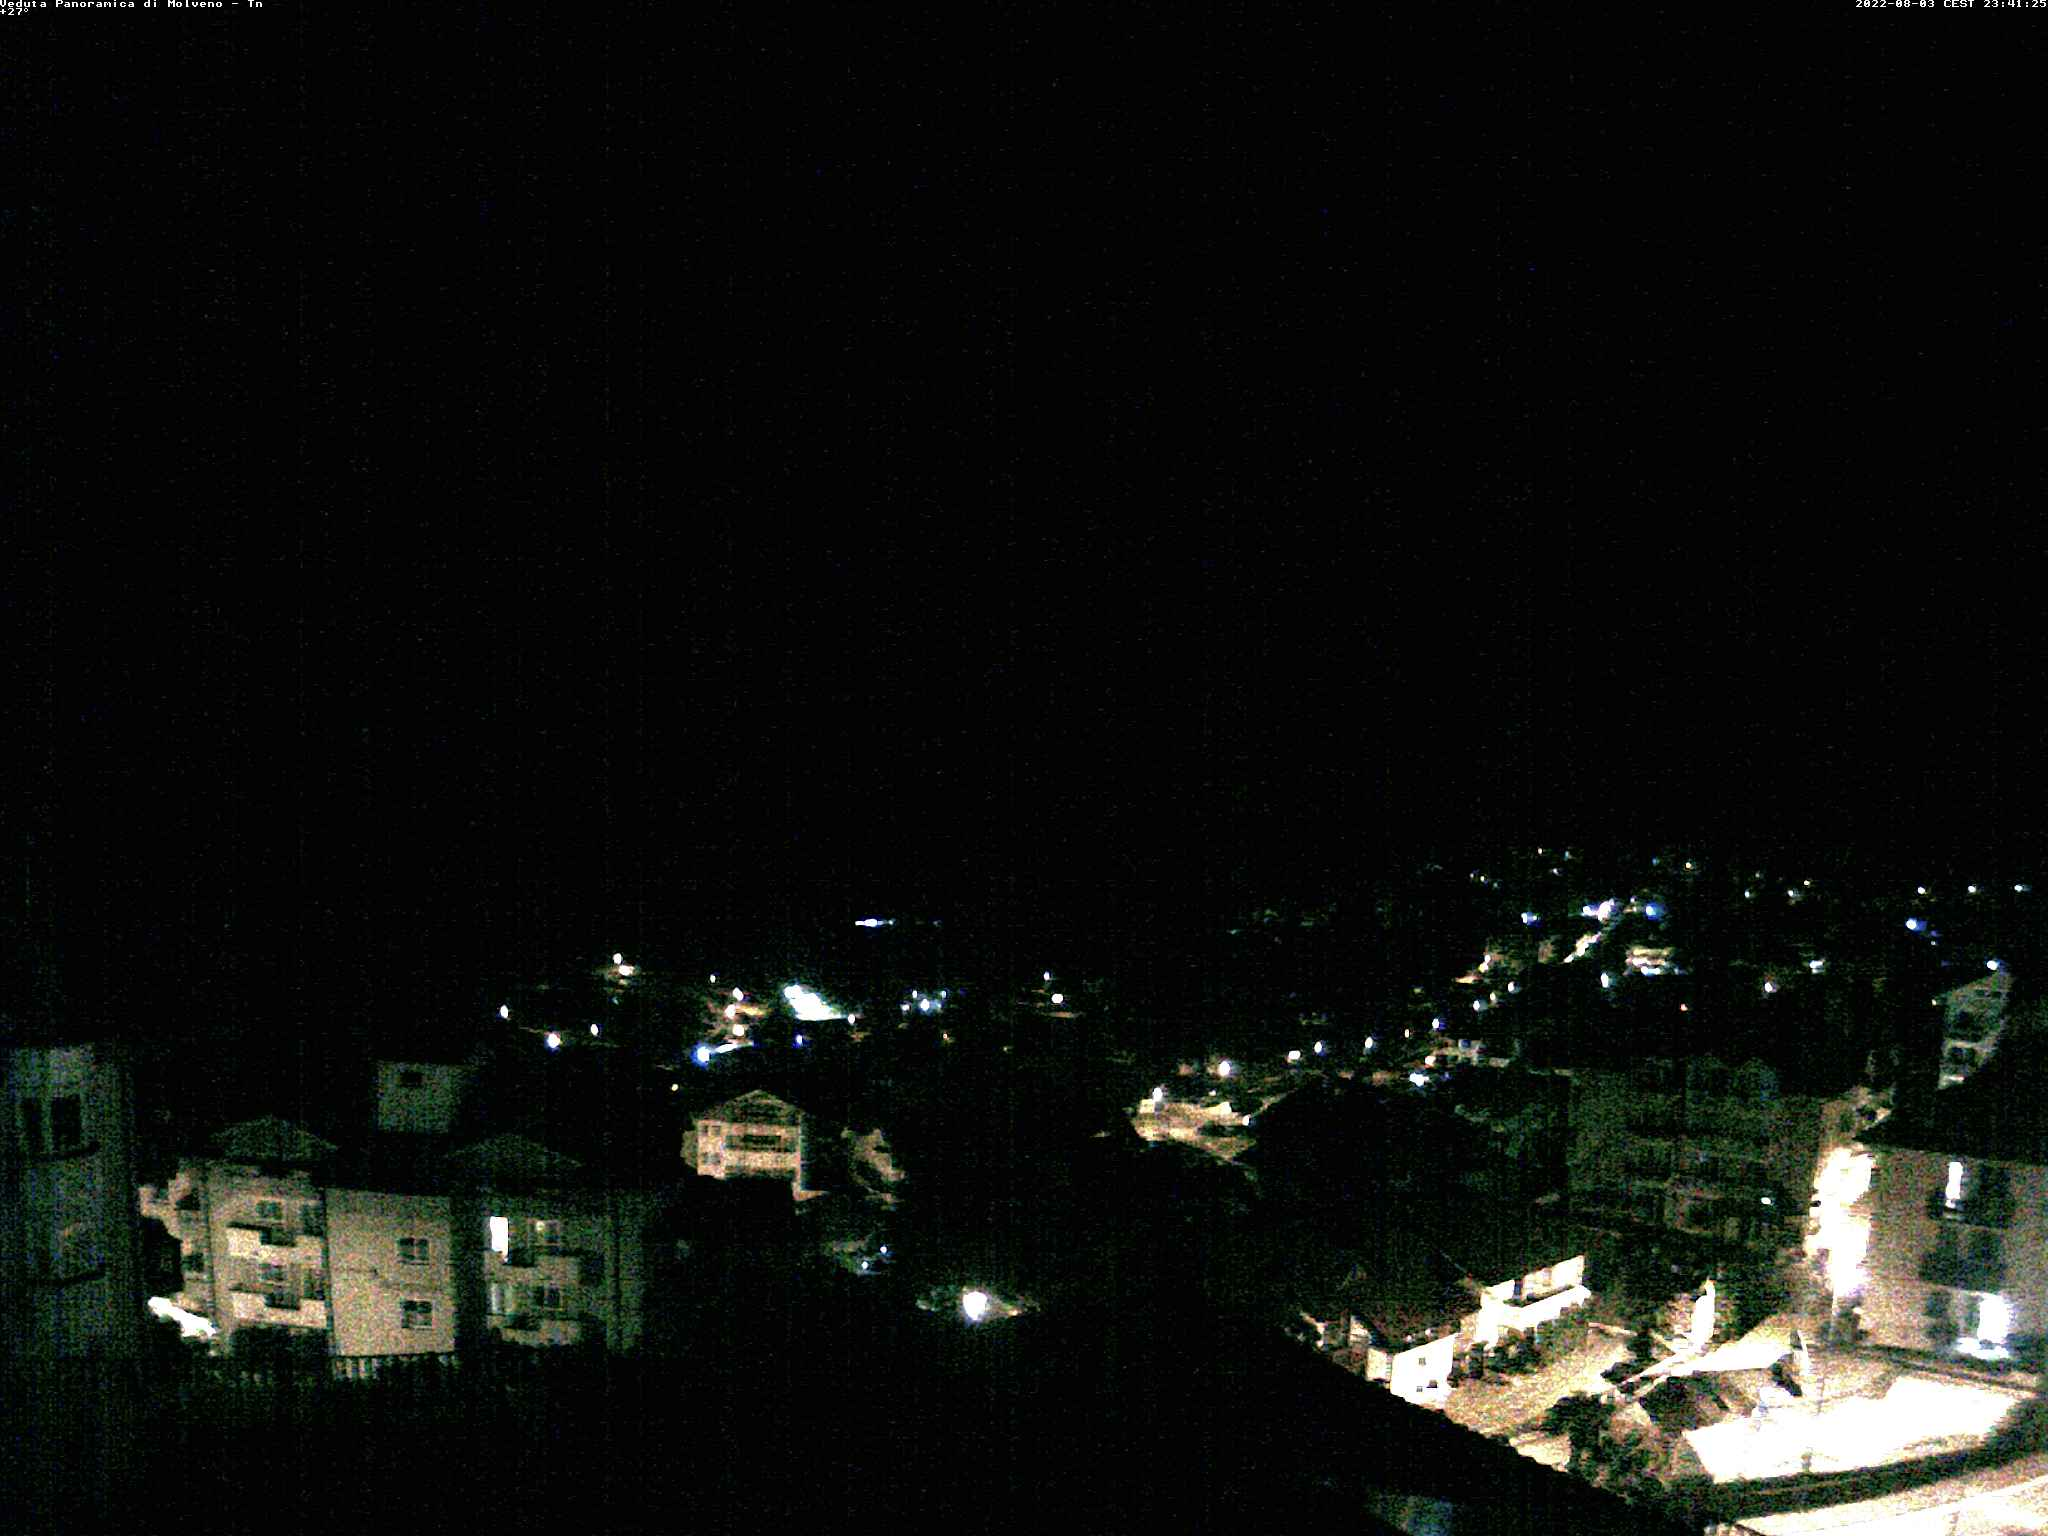 http://webcam.molveno.it/webcam/paese.jpg